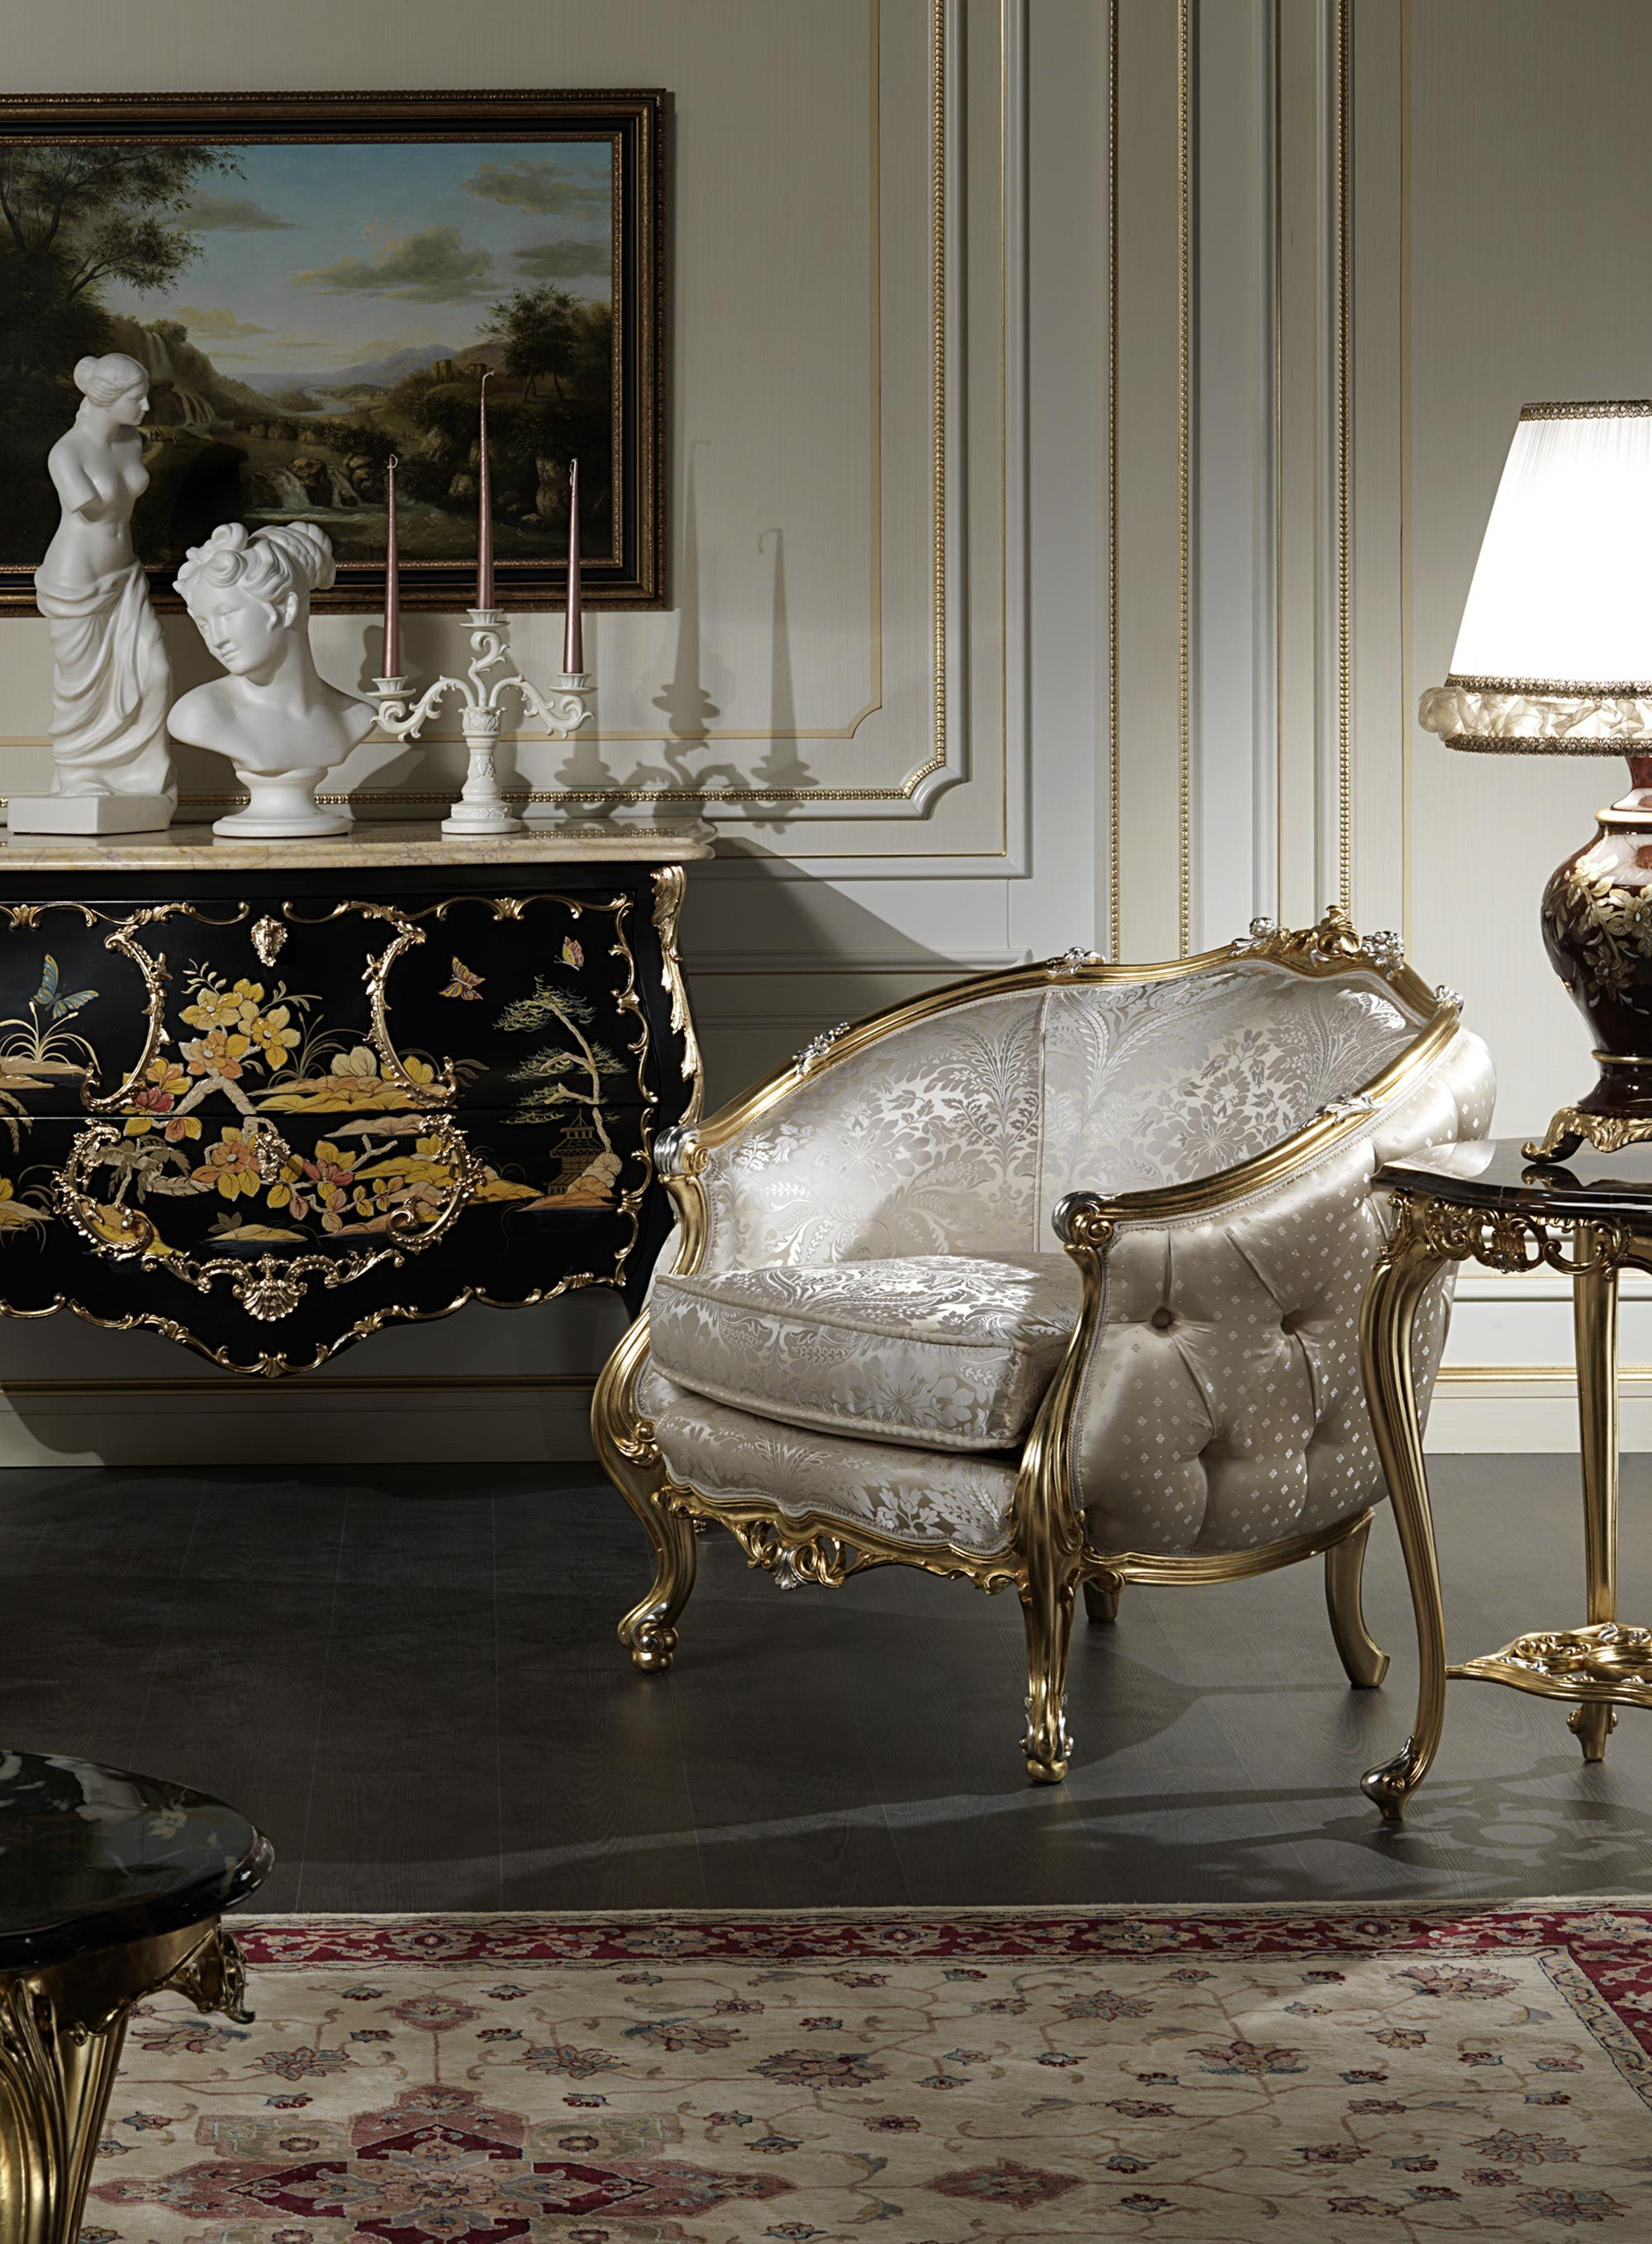 Exceptionnel Classic Luxury Living Rooms: The Exclusive Collections Of Handcrafted Made  In Italy, They Combine Beauty And Style For A Truly Luxurious